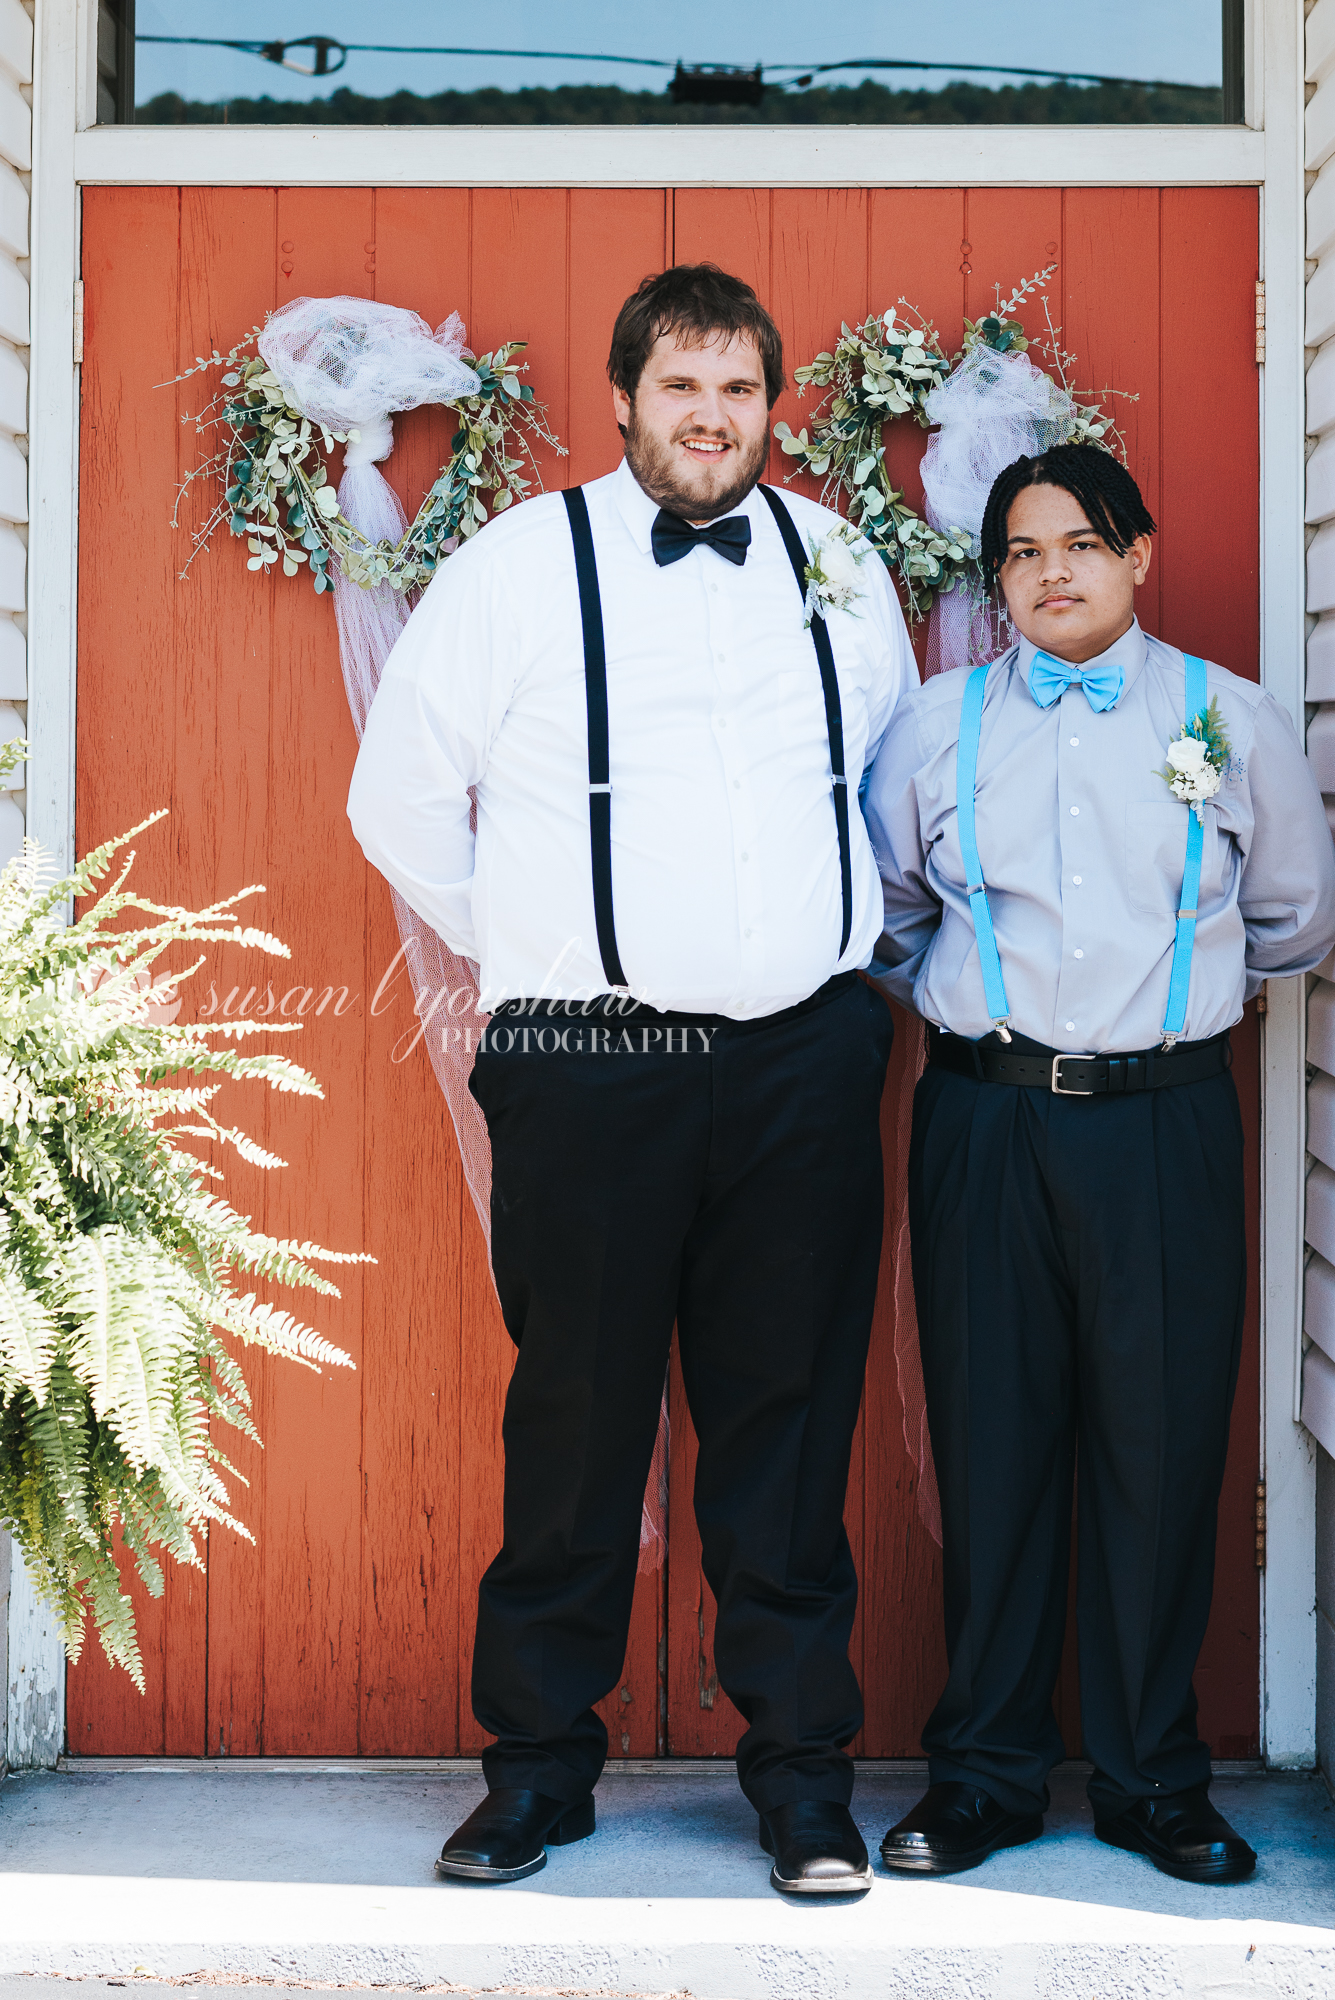 Katelyn and Wes Wedding Photos 07-13-2019 SLY Photography-24.jpg